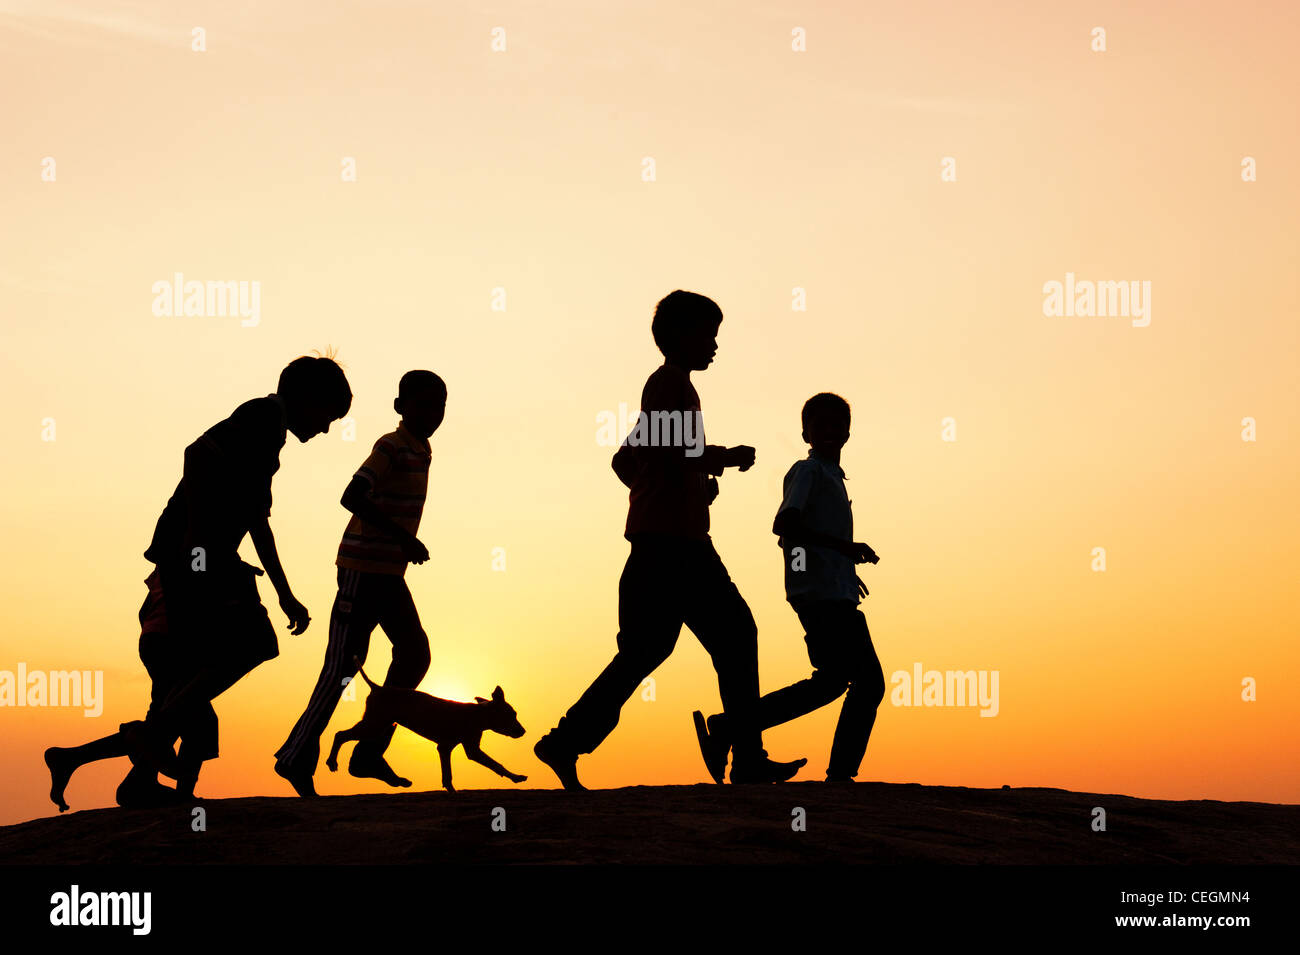 Silhouette of young Indian boys running and playing with a puppy. India - Stock Image